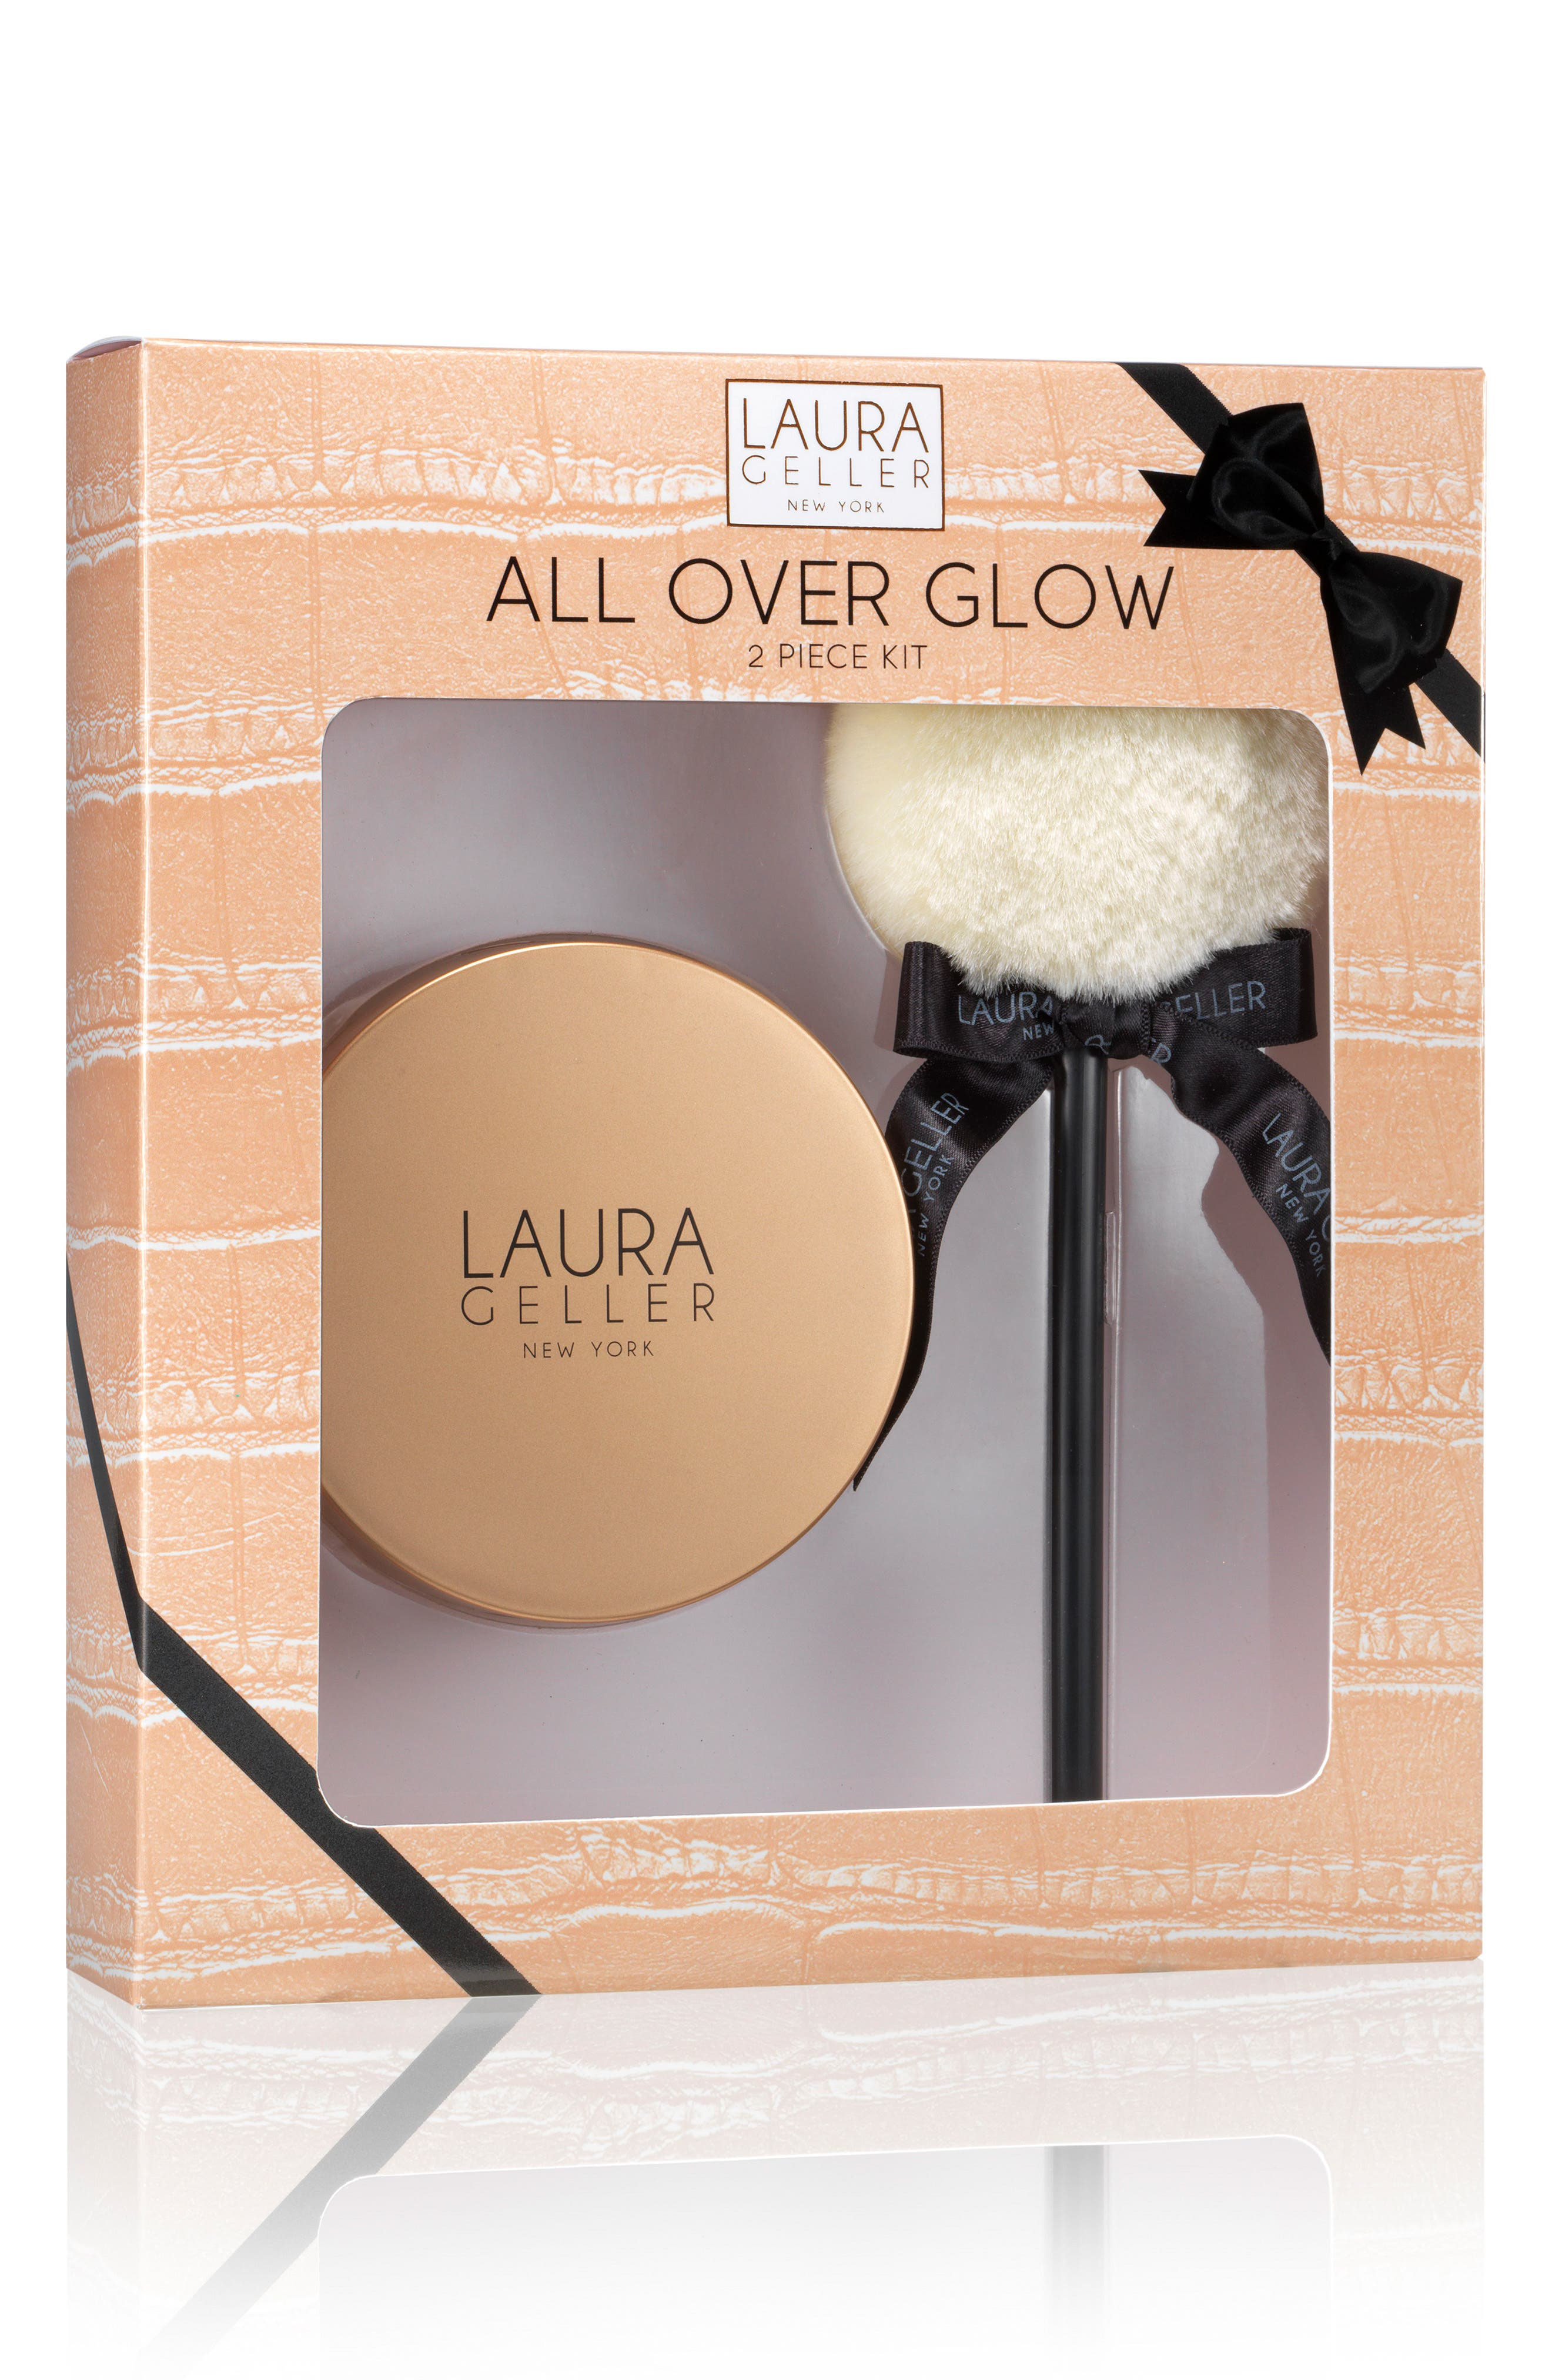 Laura Geller Beauty All Over Glow Kit ($60 Value)